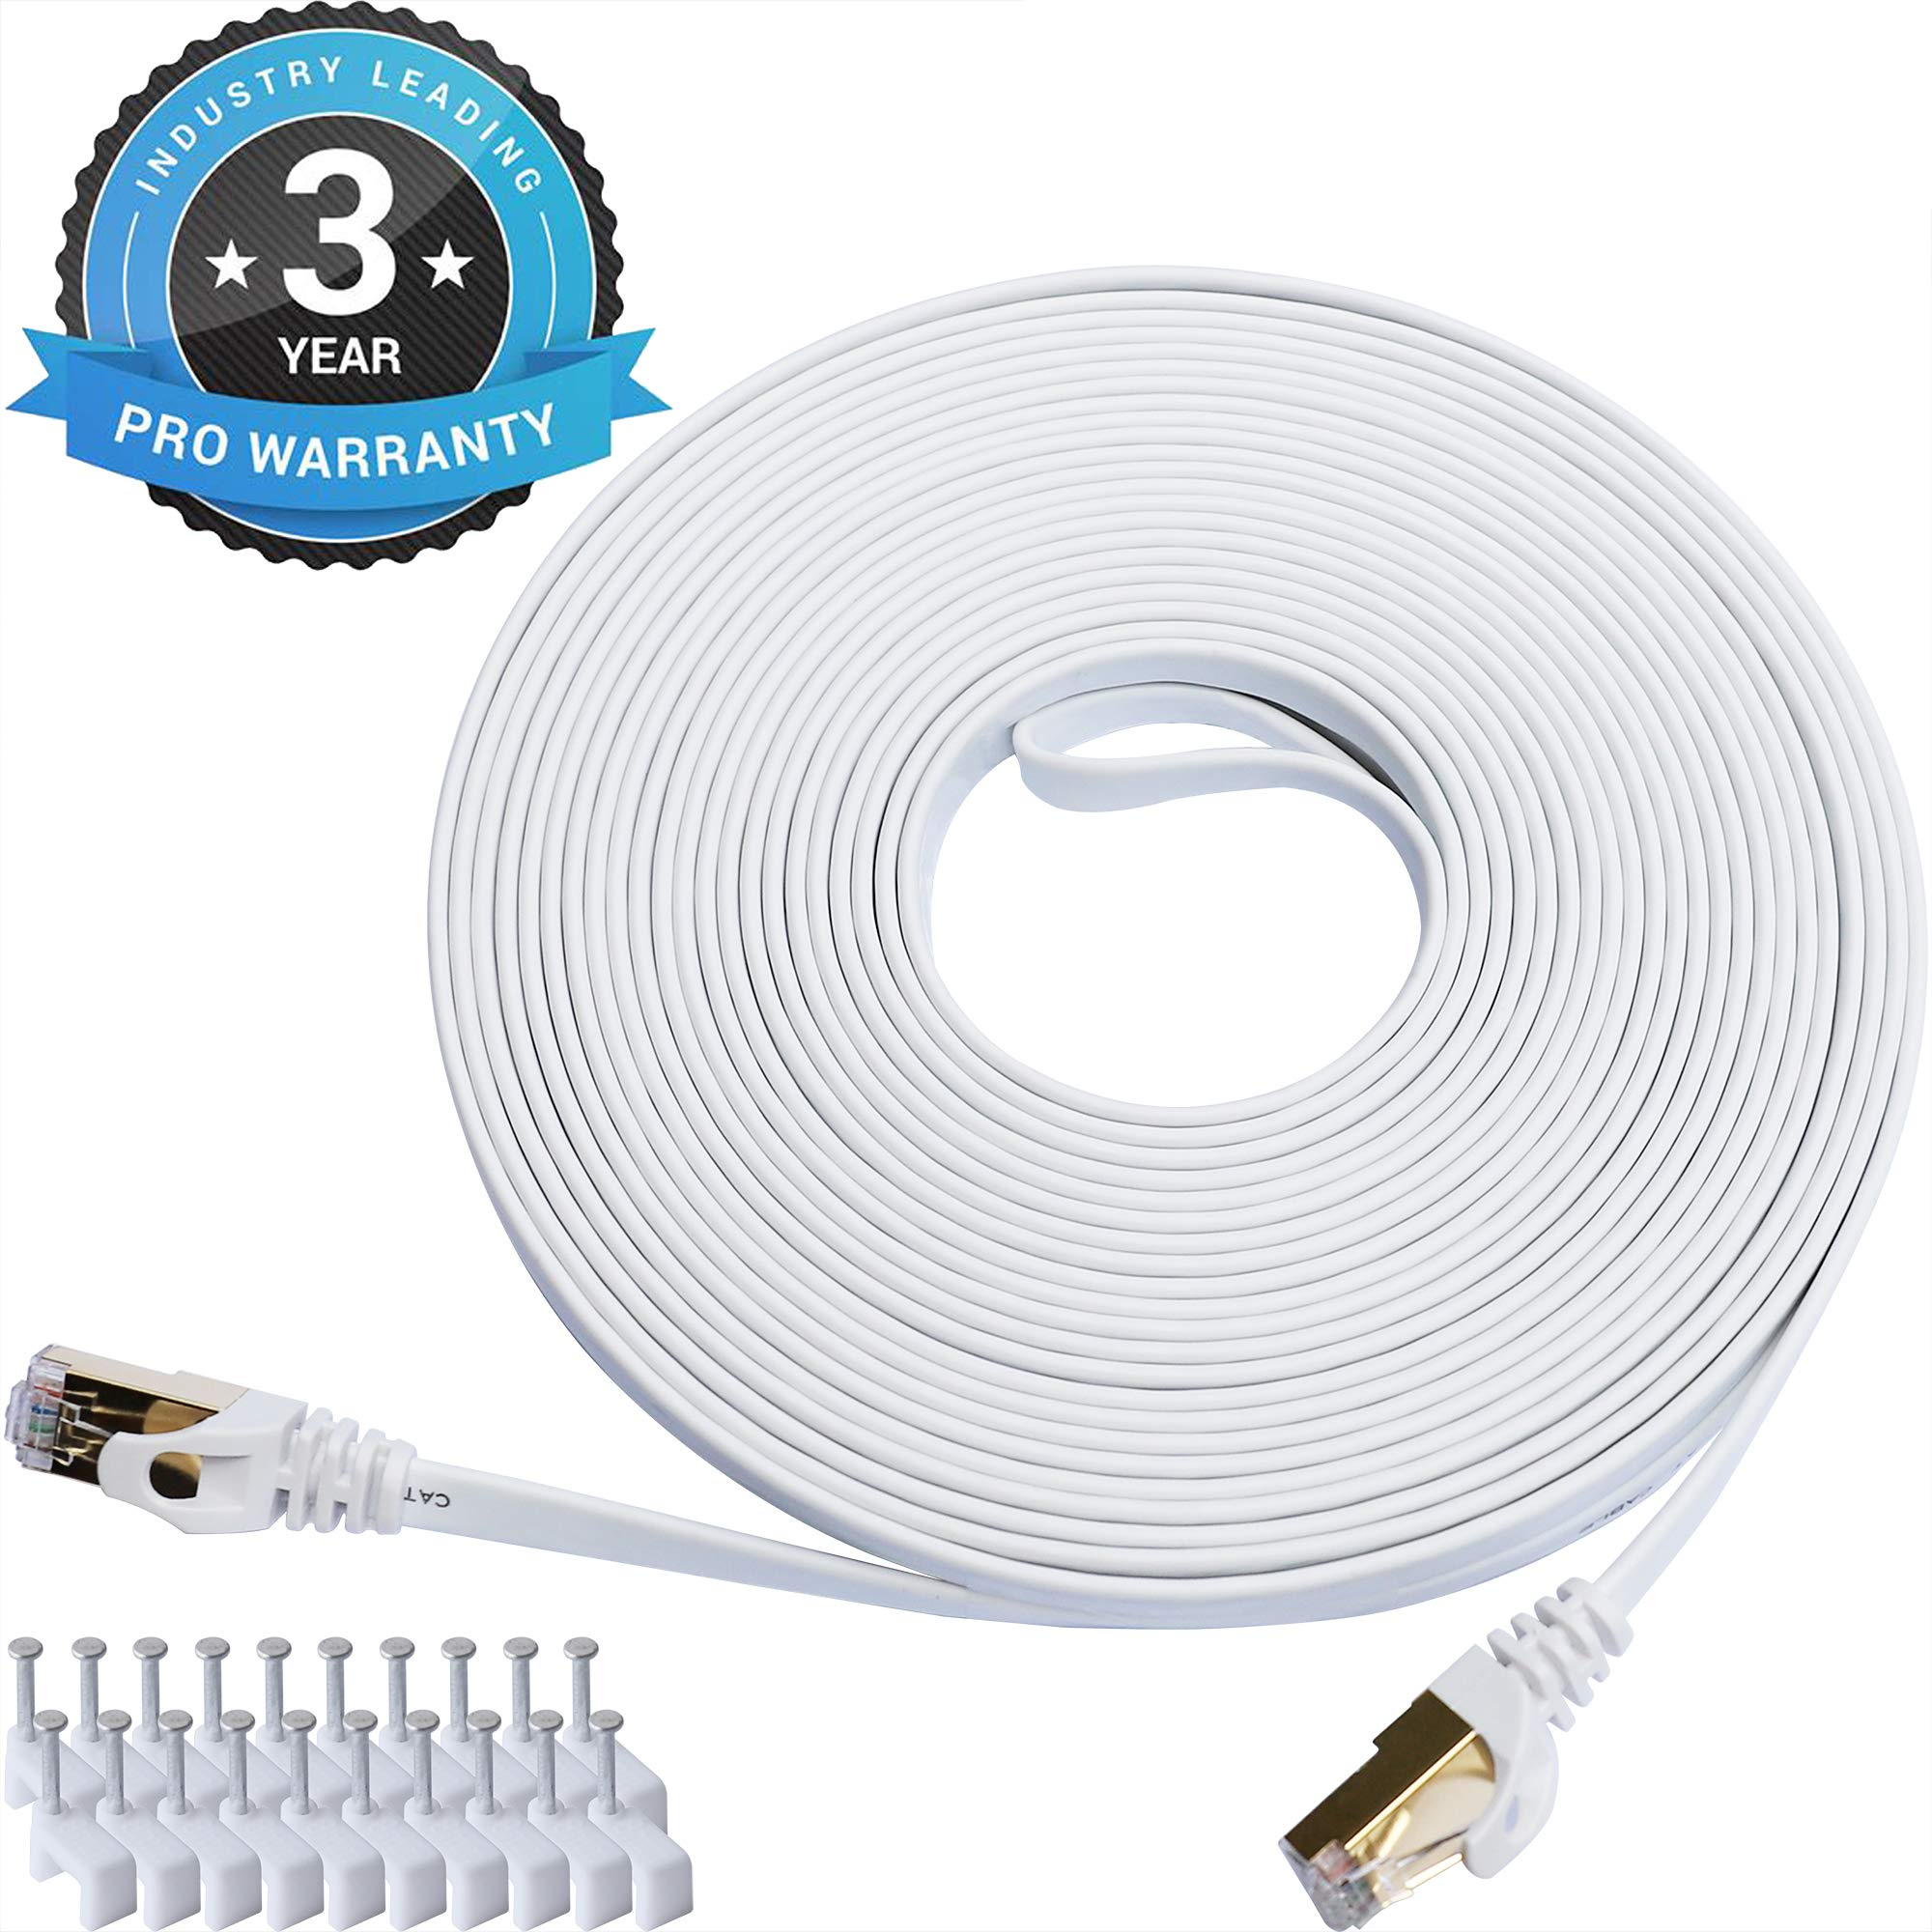 Cat 7 Ethernet Cable 50 ft LAN Cable Internet Network Cord for PS4, Xbox, Router, Modem, Gaming, White Flat Shielded 10 Gigabit RJ45 High Speed Computer Patch Wire. by DEFACE